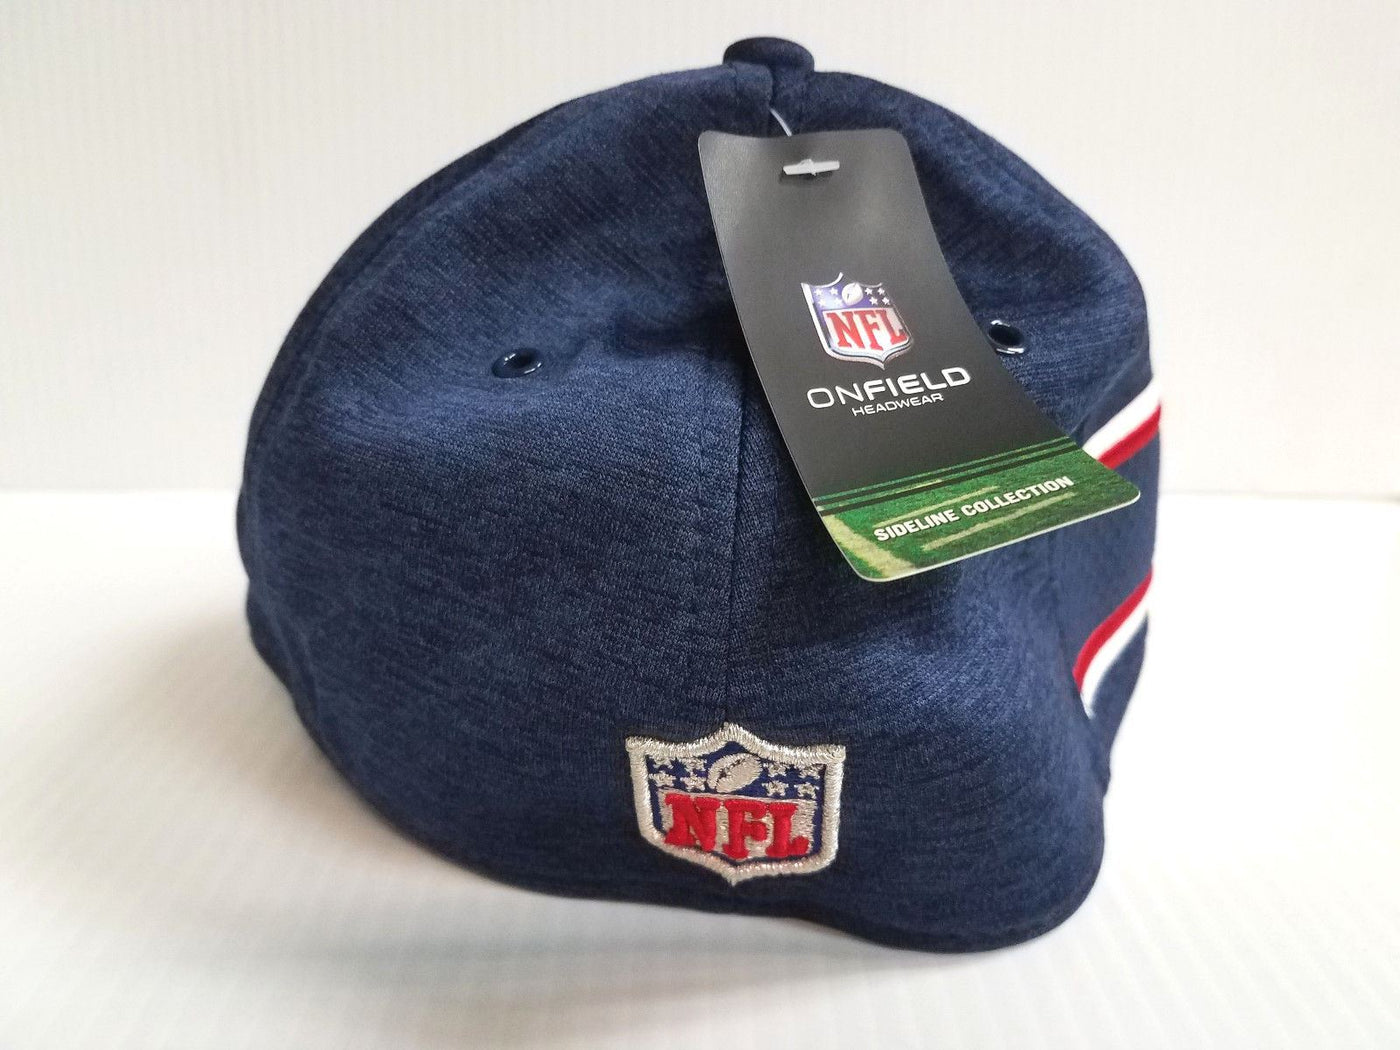 ... 2016 bca sideline 39thirty flex fitted hat large 310cc fcf00 sale new  england patriots cap era 39thirty stretch on field 2018 home sideline hat  250c1 ... 19fc5d31a180